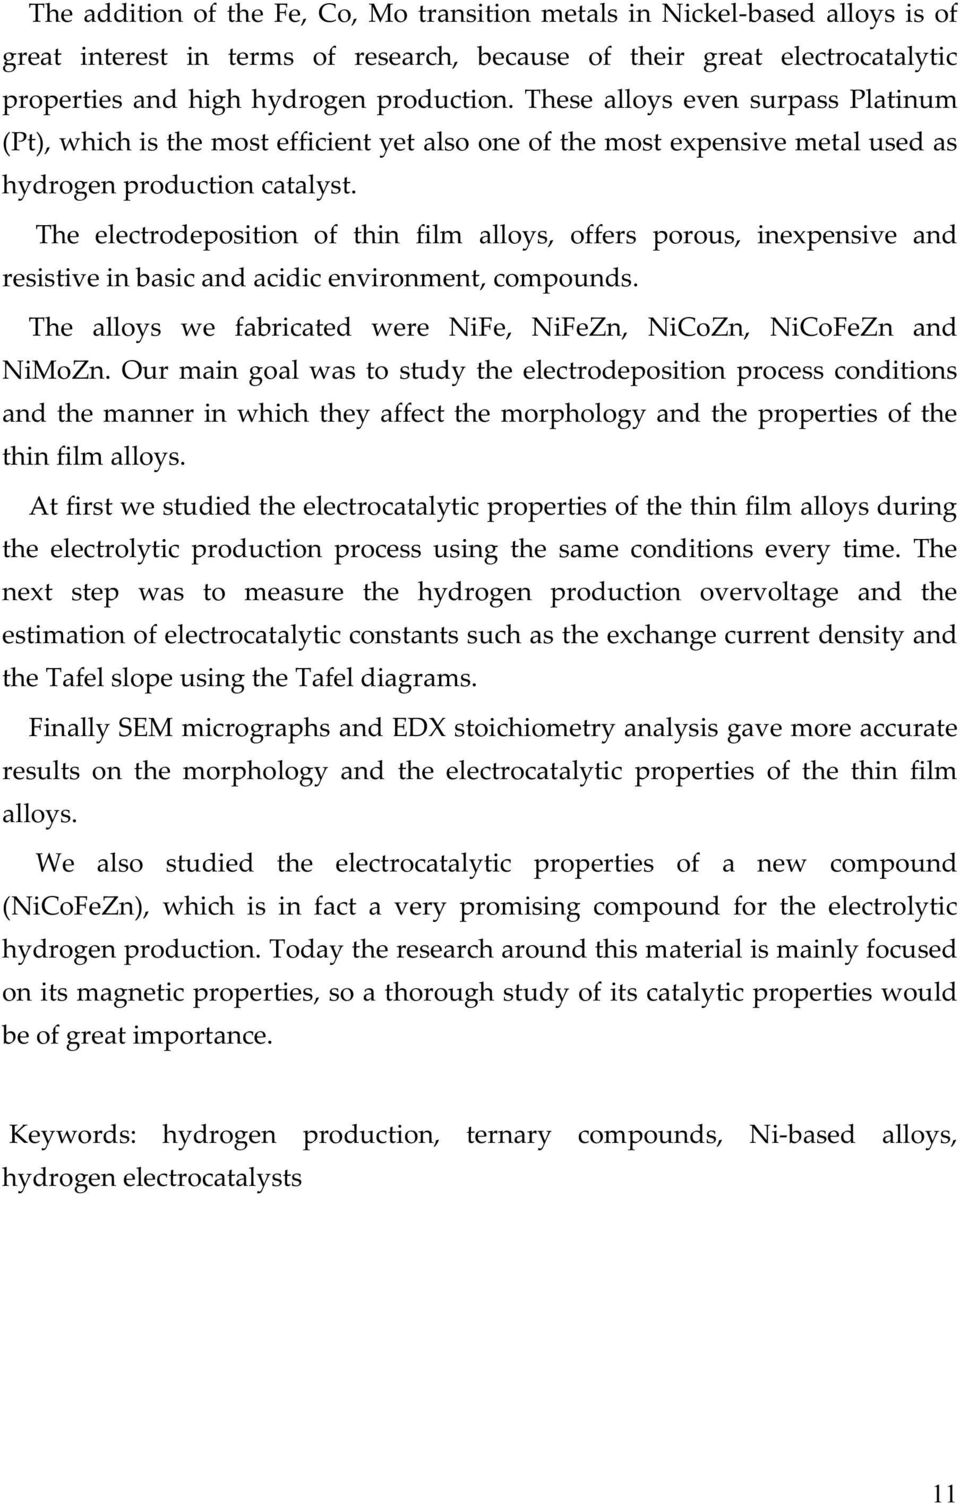 The electrodeposition of thin film alloys, offers porous, inexpensive and resistive in basic and acidic environment, compounds. The alloys we fabricated were NiFe, NiFeZn, NiCoZn, NiCoFeZn and NiMoZn.